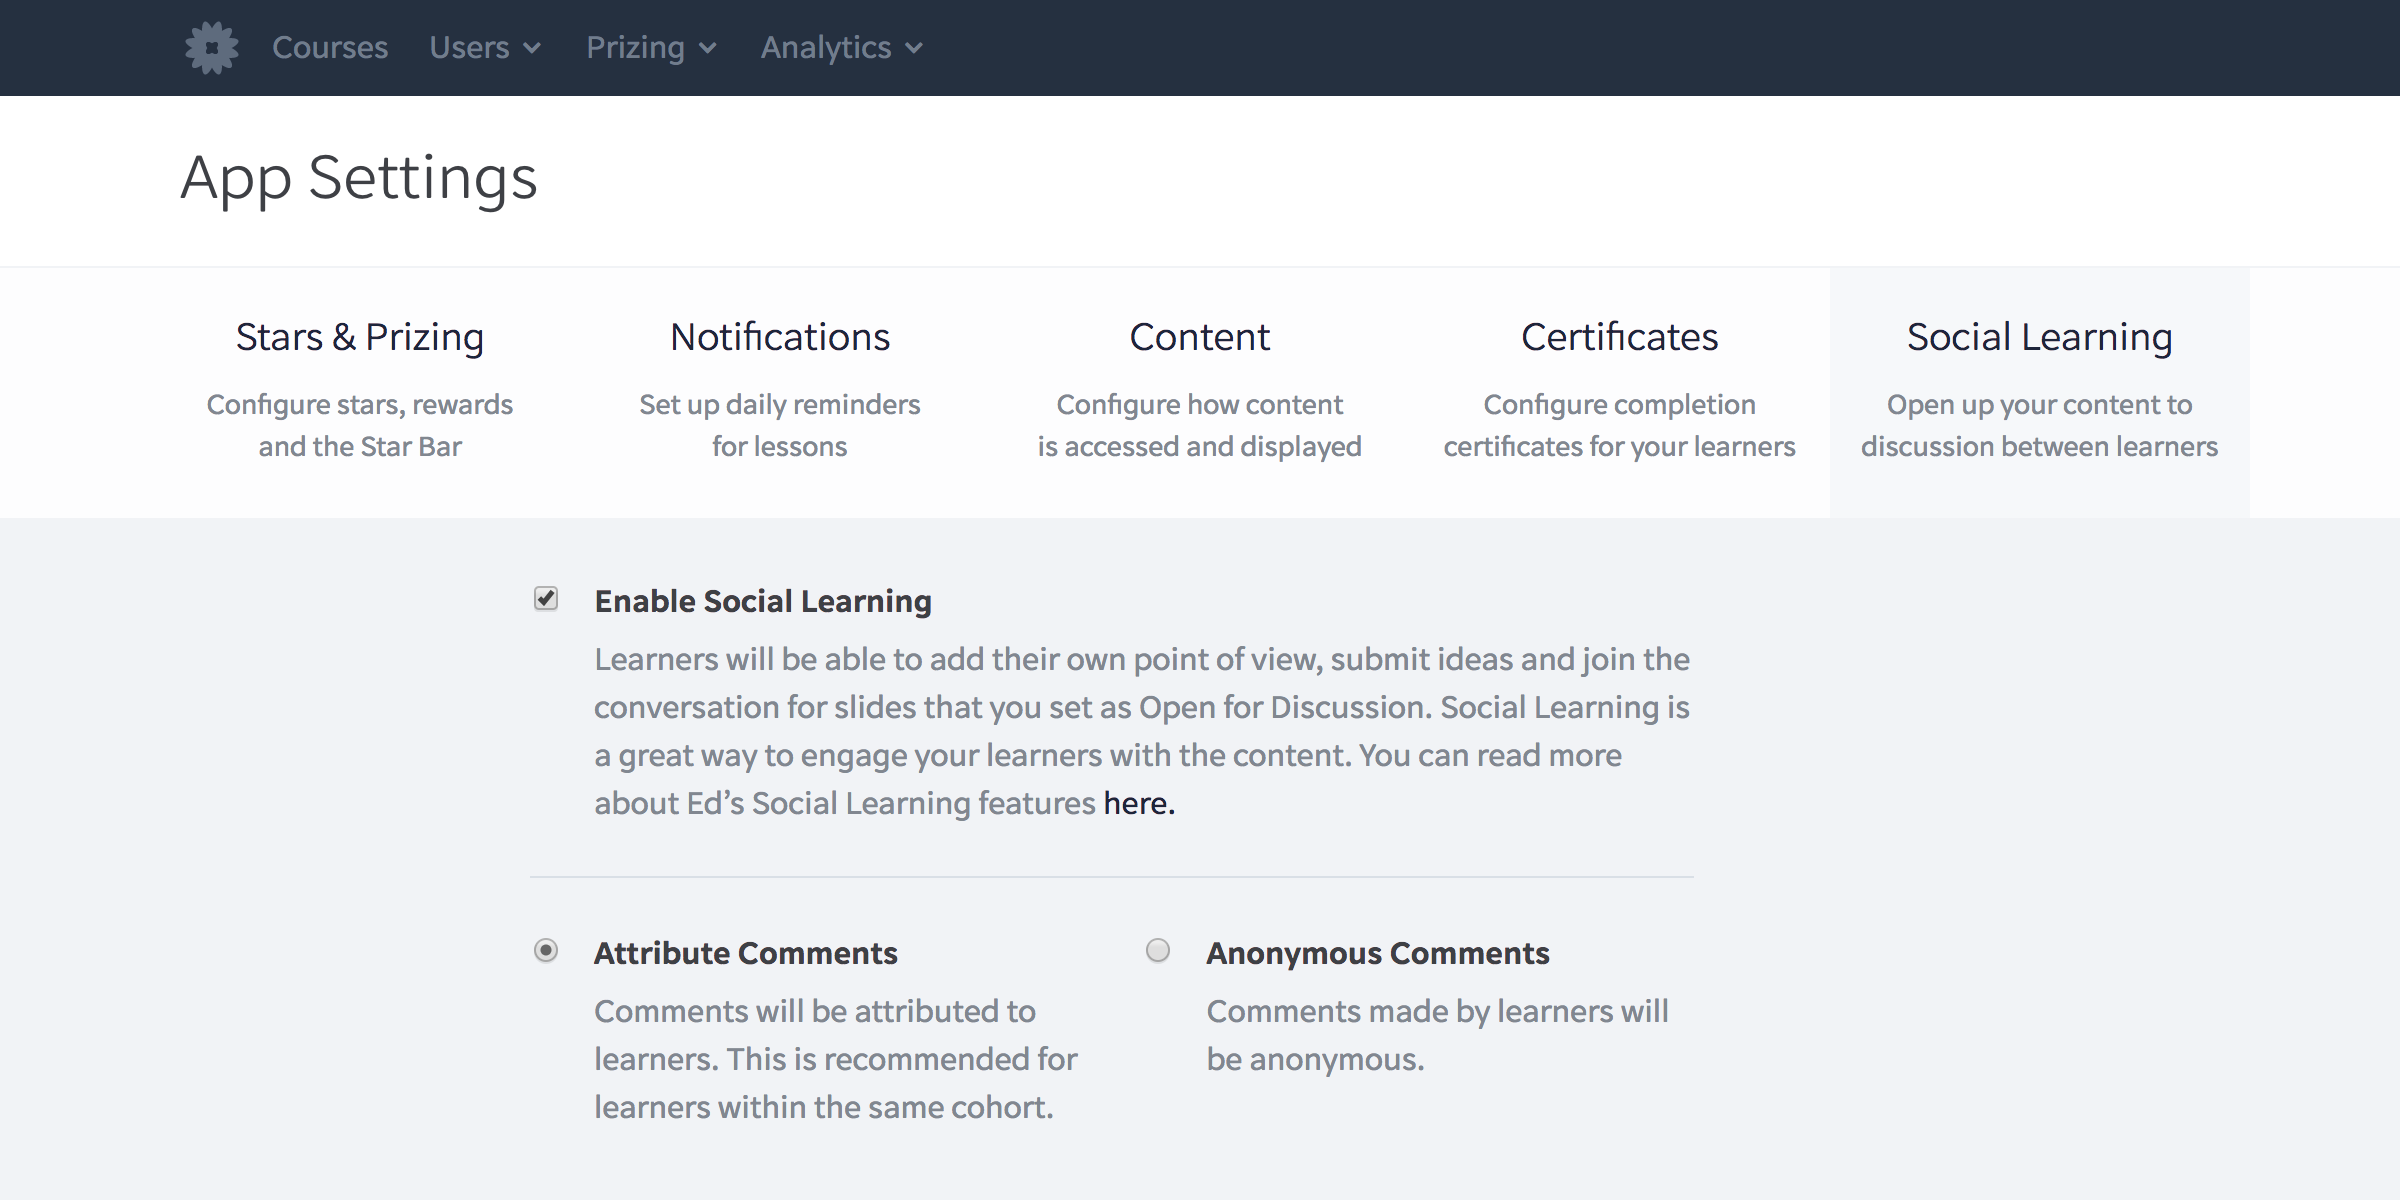 Enable Social Learning in your App Settings